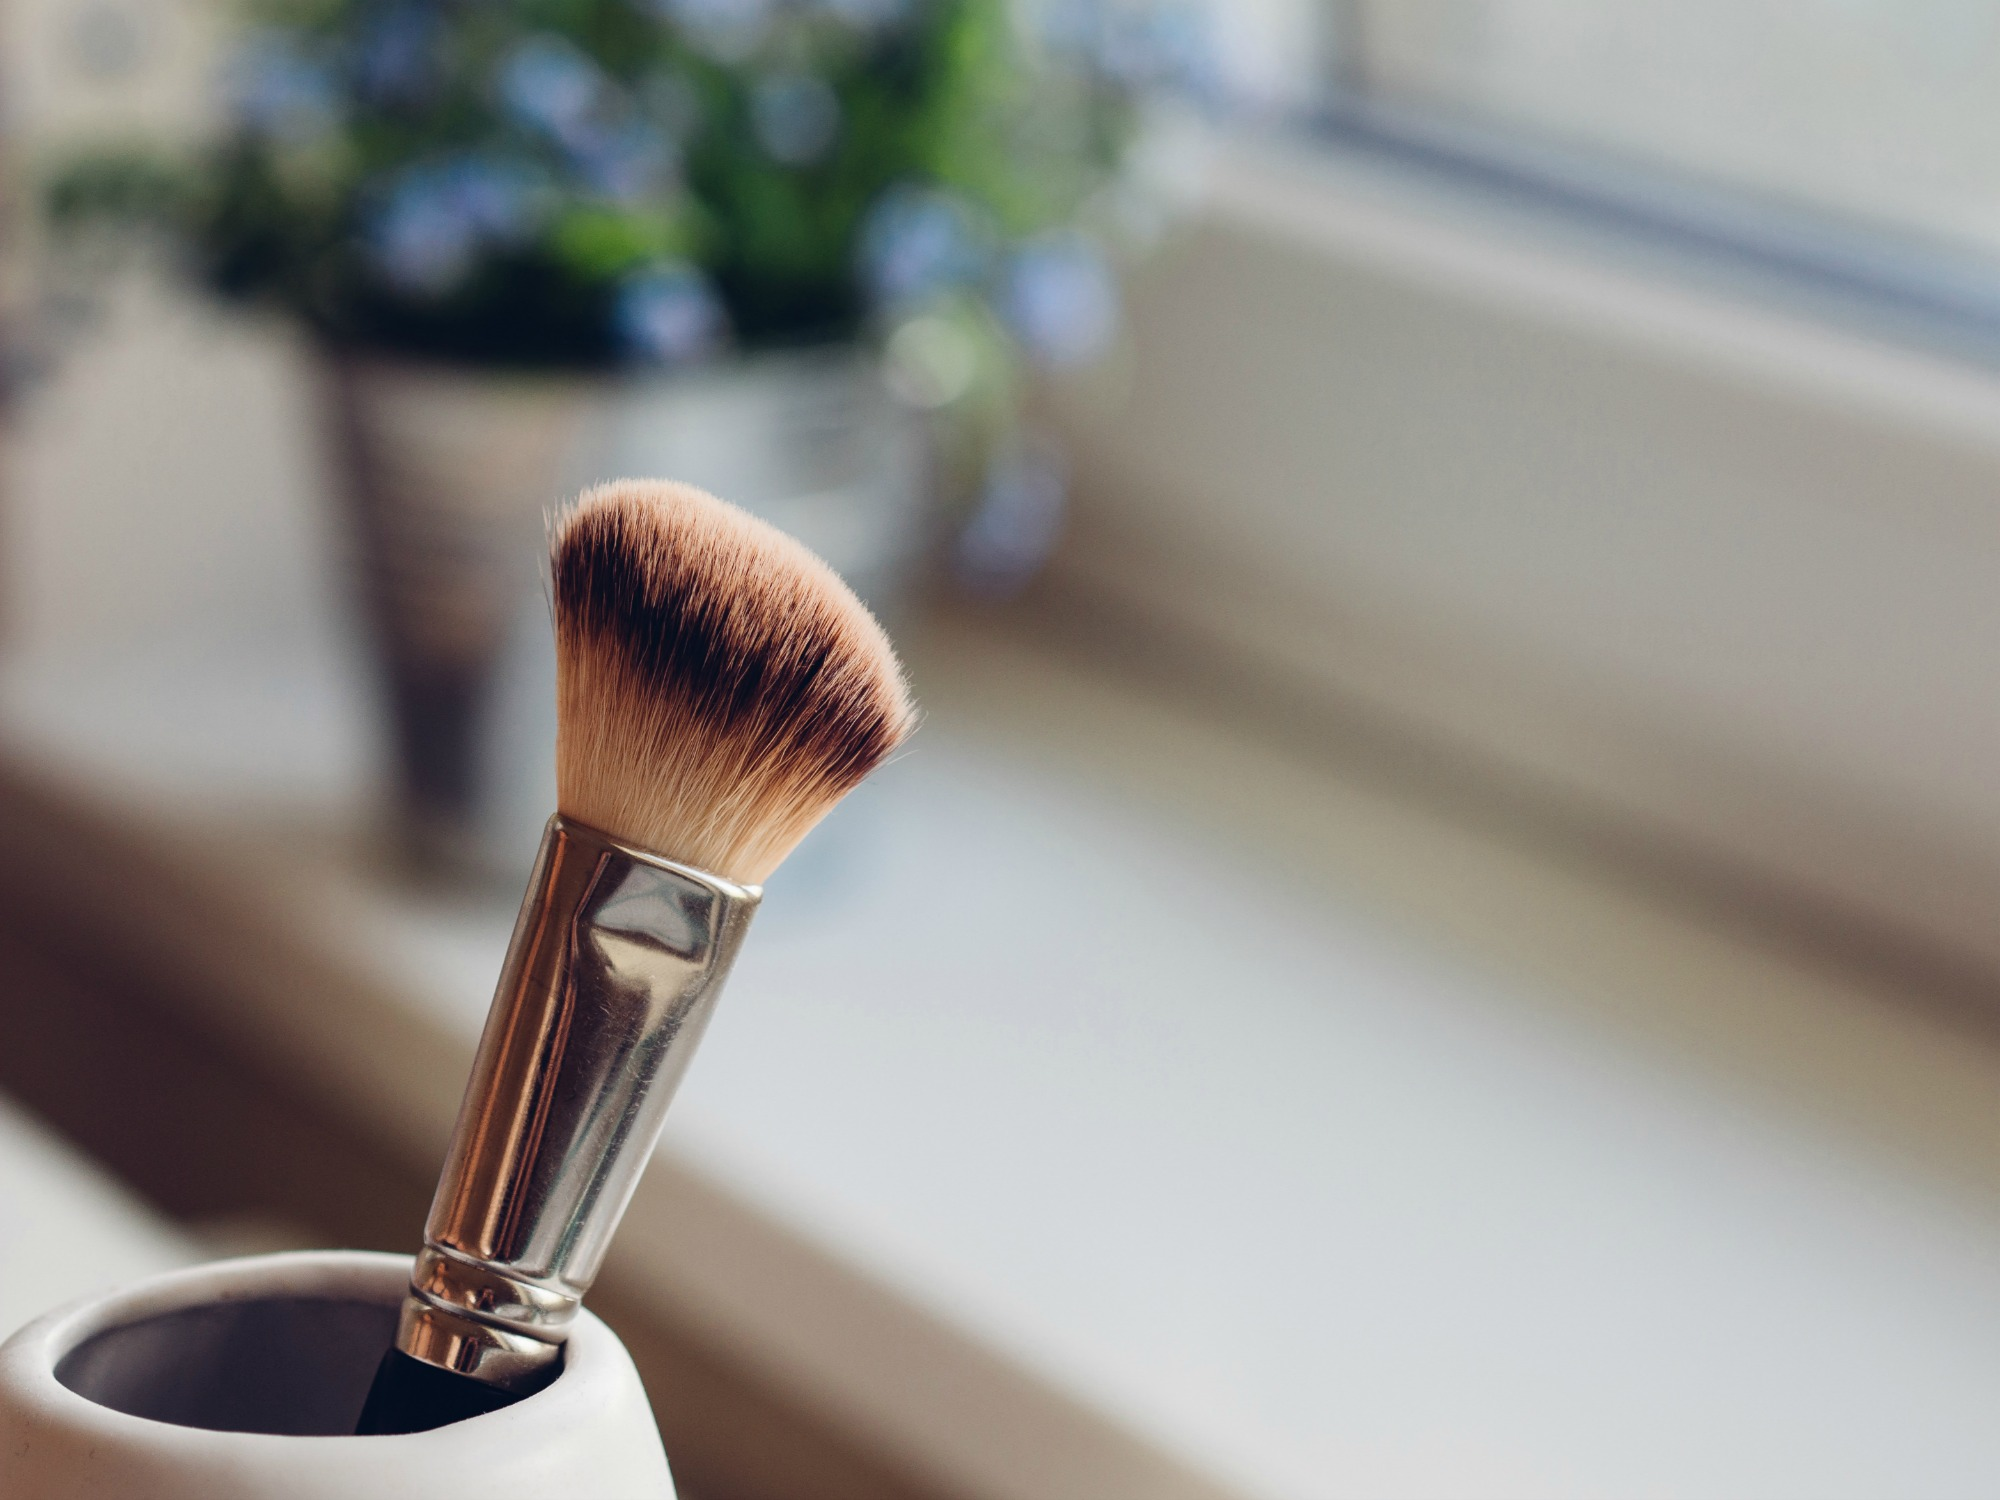 Blush brush in jar